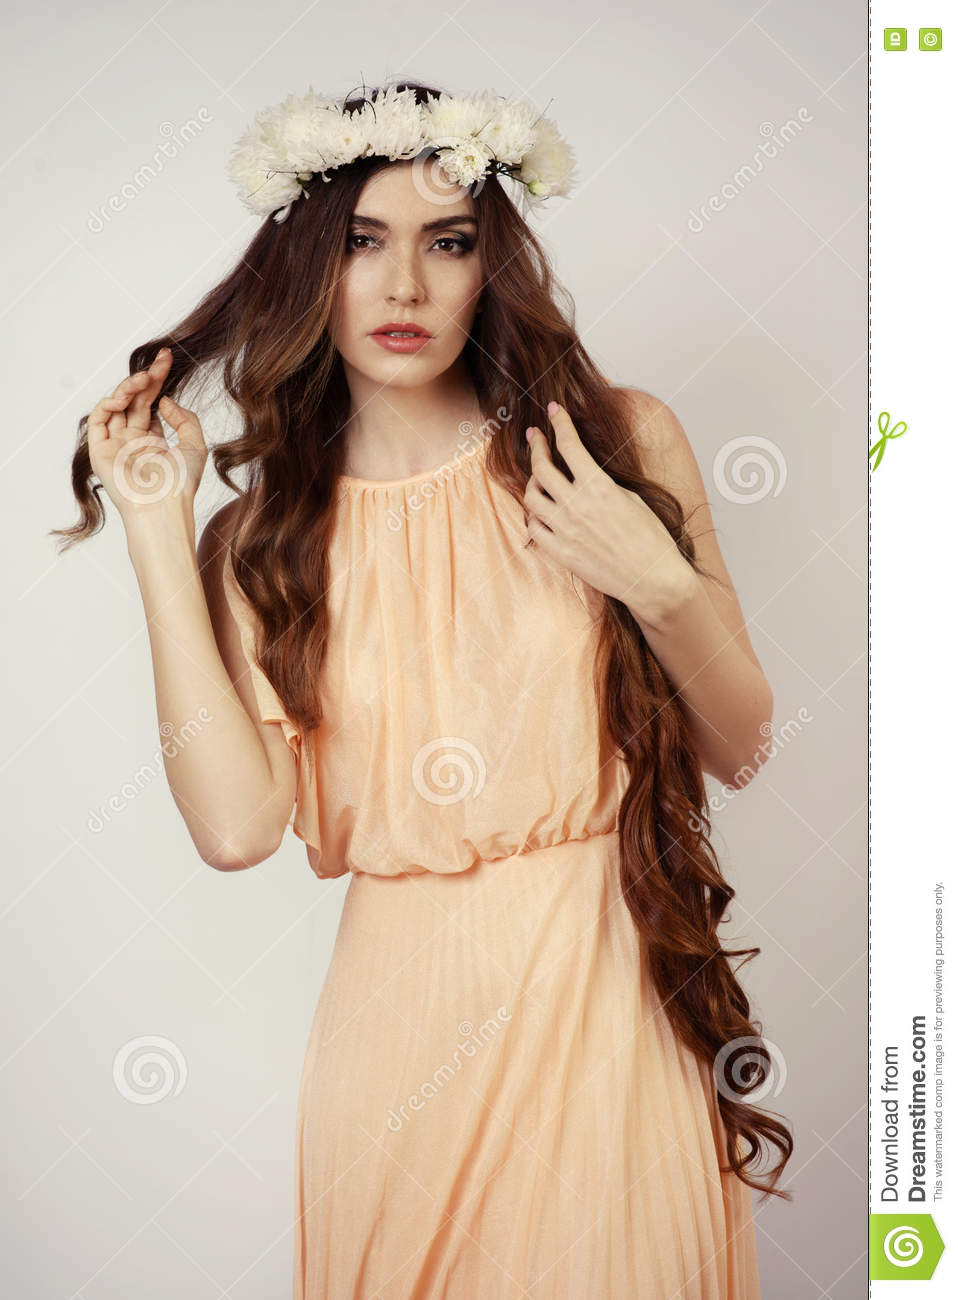 Youn girl at flower crown stock photo image of movie 73951690 youn beautiful girl at white flower crown izmirmasajfo